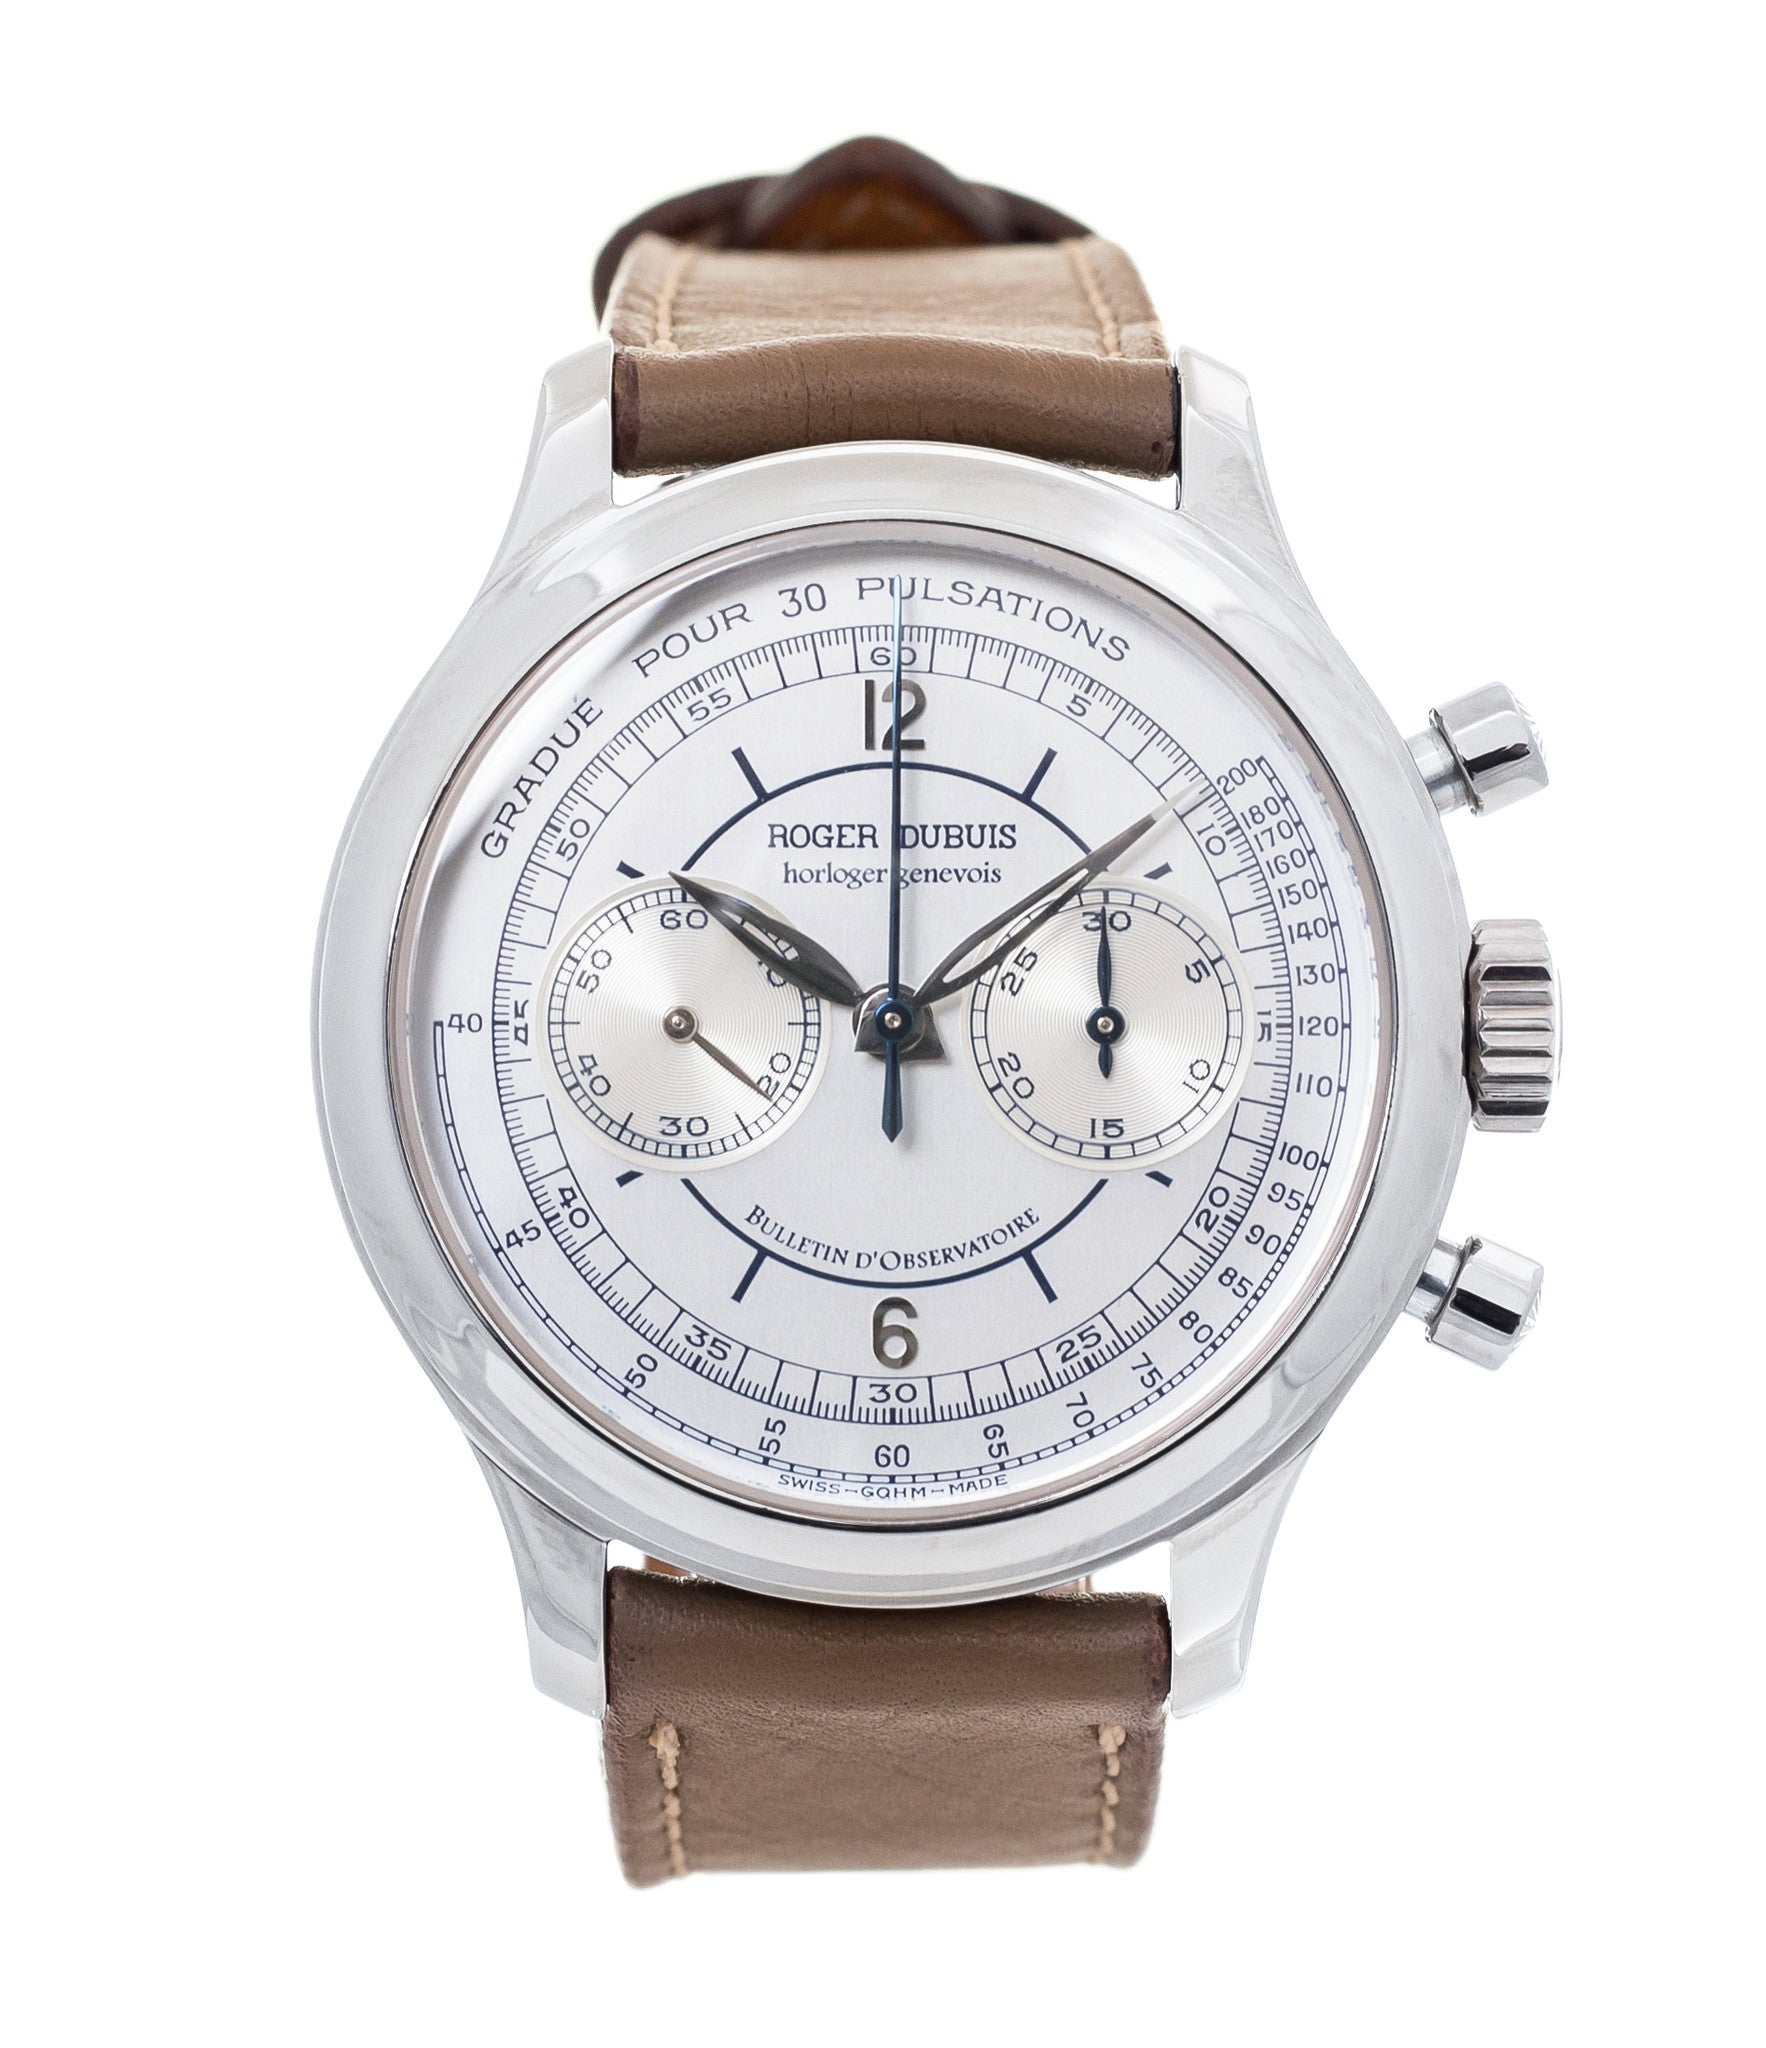 buy Roger Dubuis Hommage Chronograph early rare watch H37 560 online at a Collcted Man